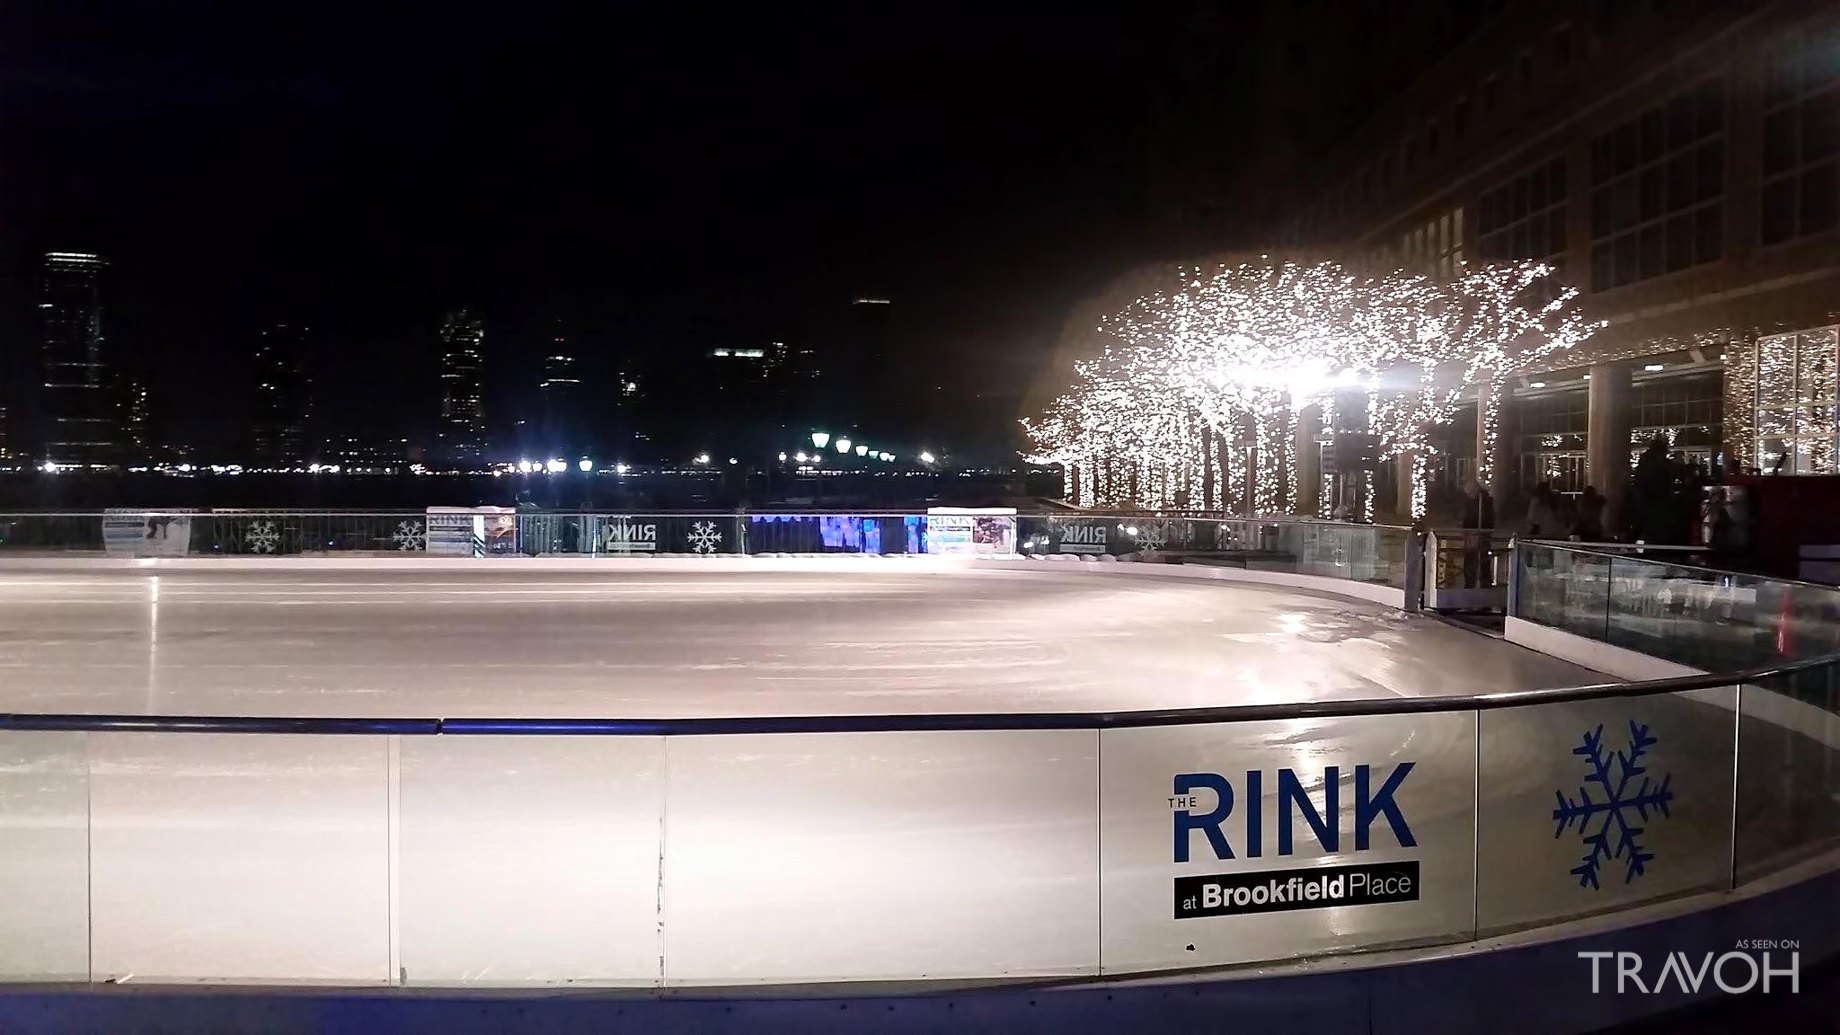 The Rink at Brookfield Place - Three World Financial Center, 230 Vesey St, New York, NY, USA